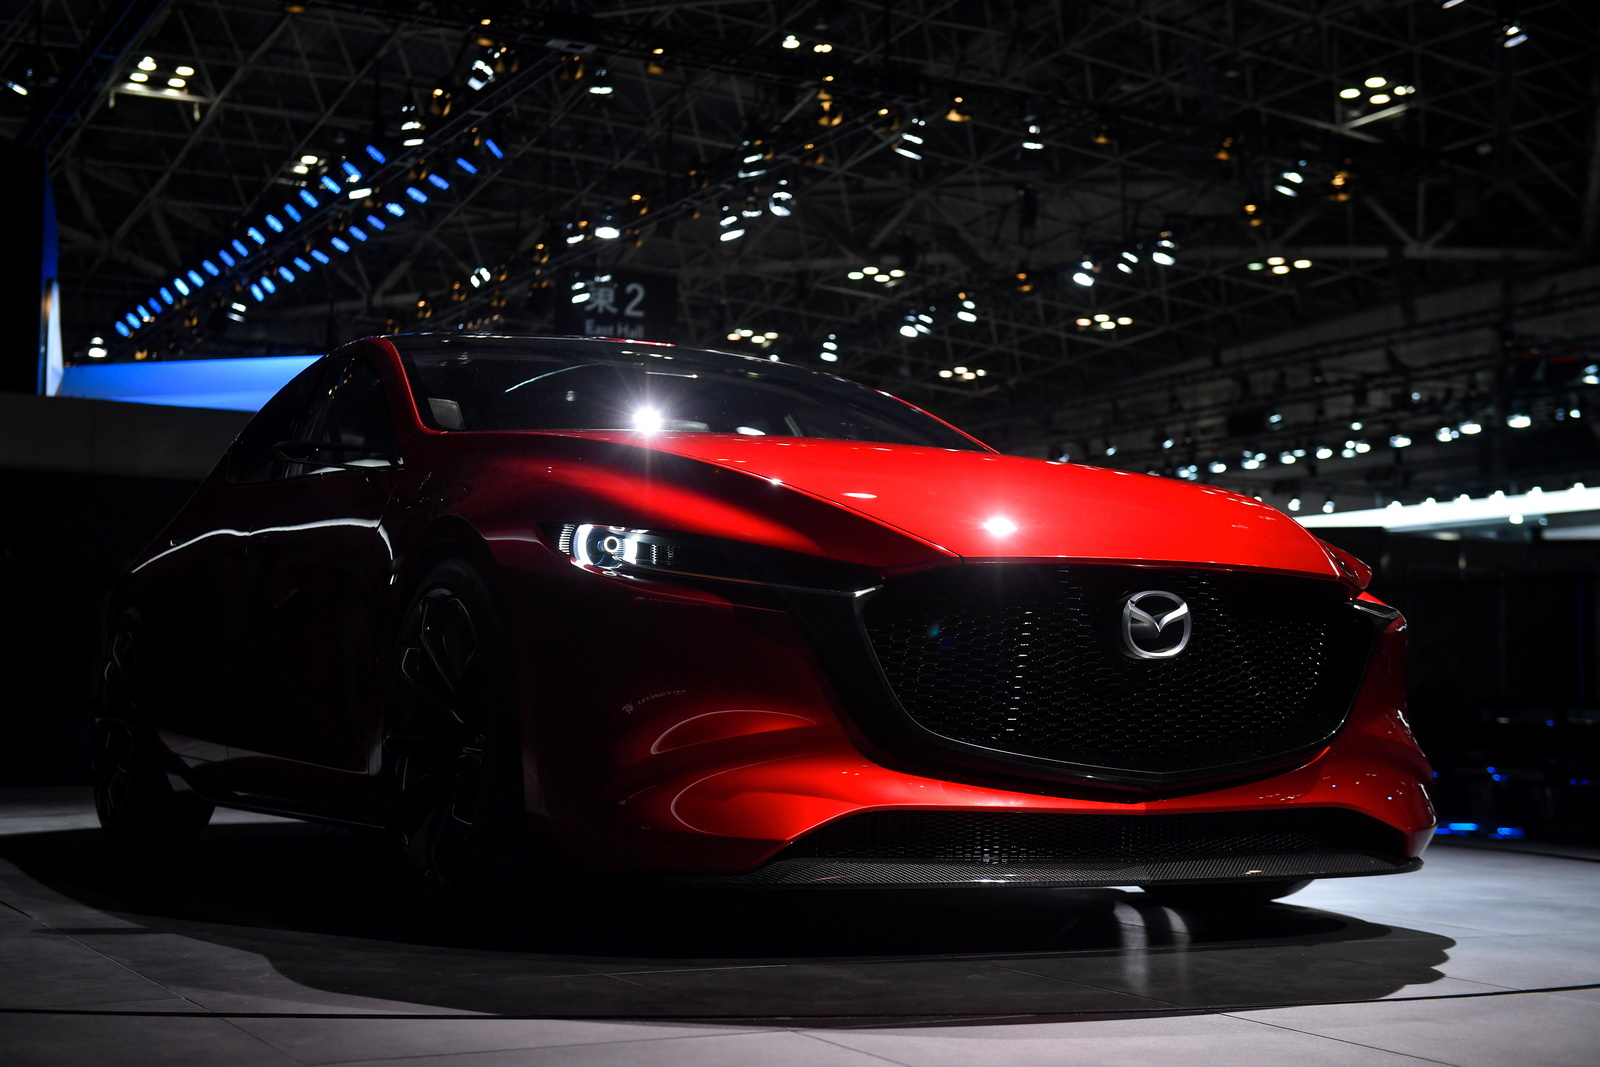 TOKYO, JAPAN - OCTOBER 25:  Mazda Kai Concept is displayed at the Mazda Motor Co booth during the Tokyo Motor Show at Tokyo Big Sight on October 25, 2017 in Tokyo, Japan.  (Photo by Koki Nagahama/Getty Images for Mazda Motor Co)